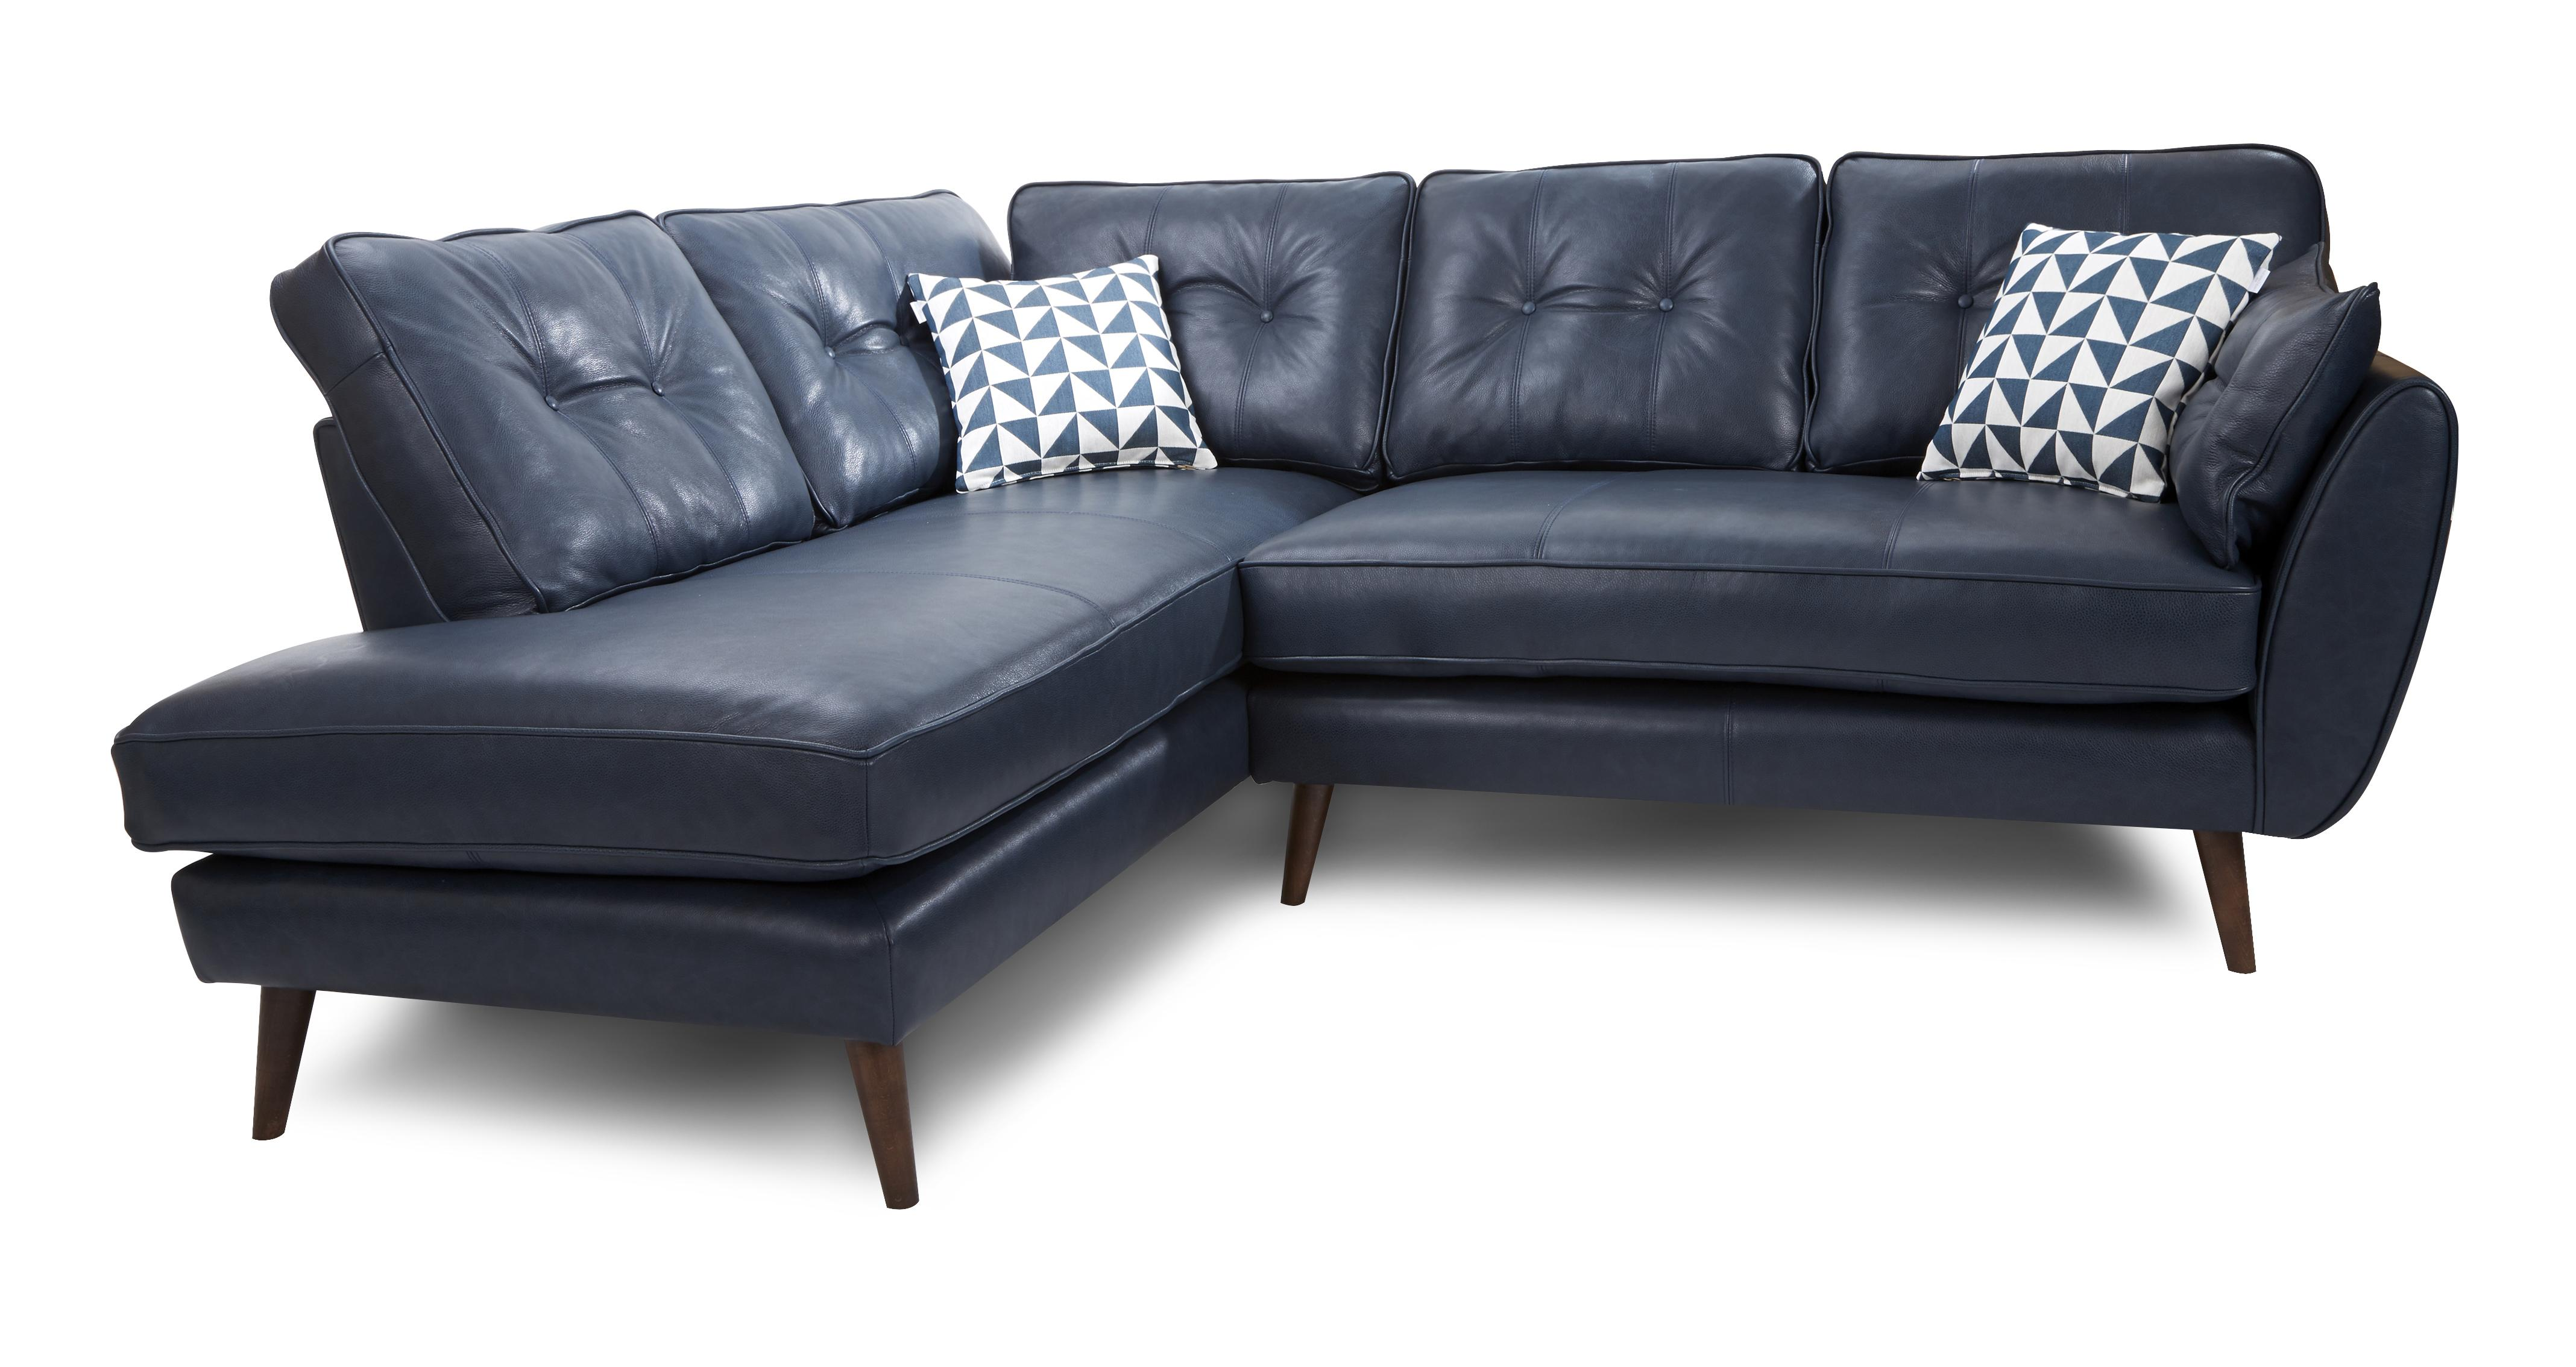 French Connection Zinc Sofa Review So There It Is Our